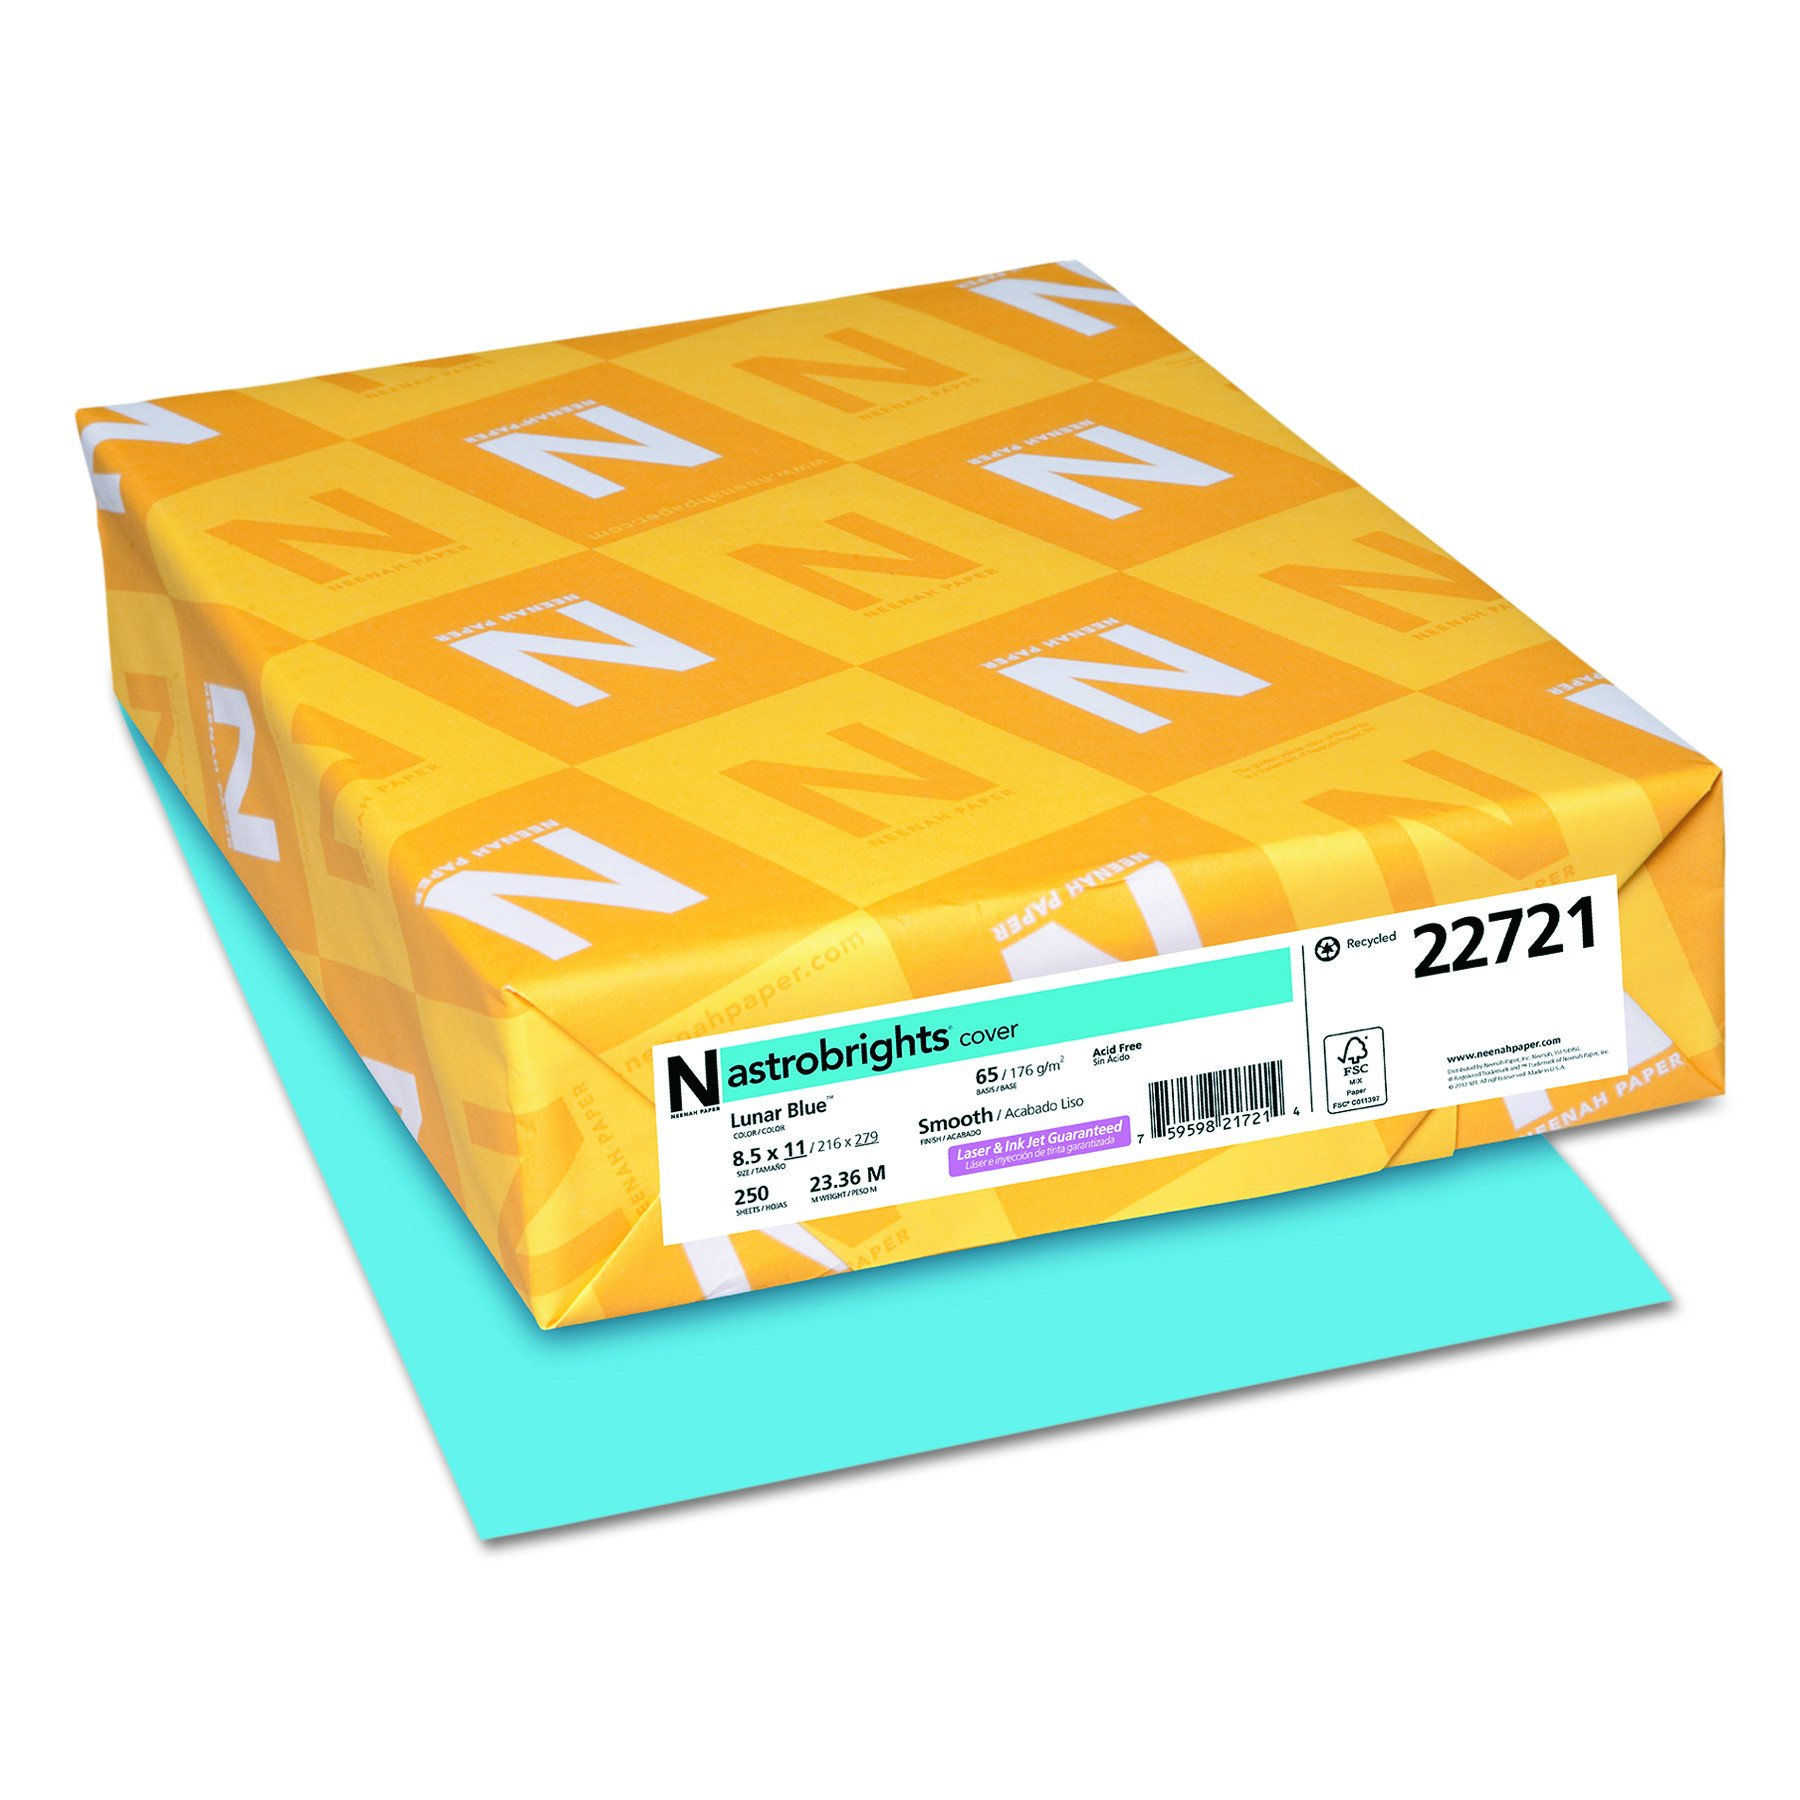 Wausau Paper 22721 Astrobrights Colored Cardstock, 8.5 x 11, 65 lb / 176 gsm, Lunar Blue, 250 Sheets